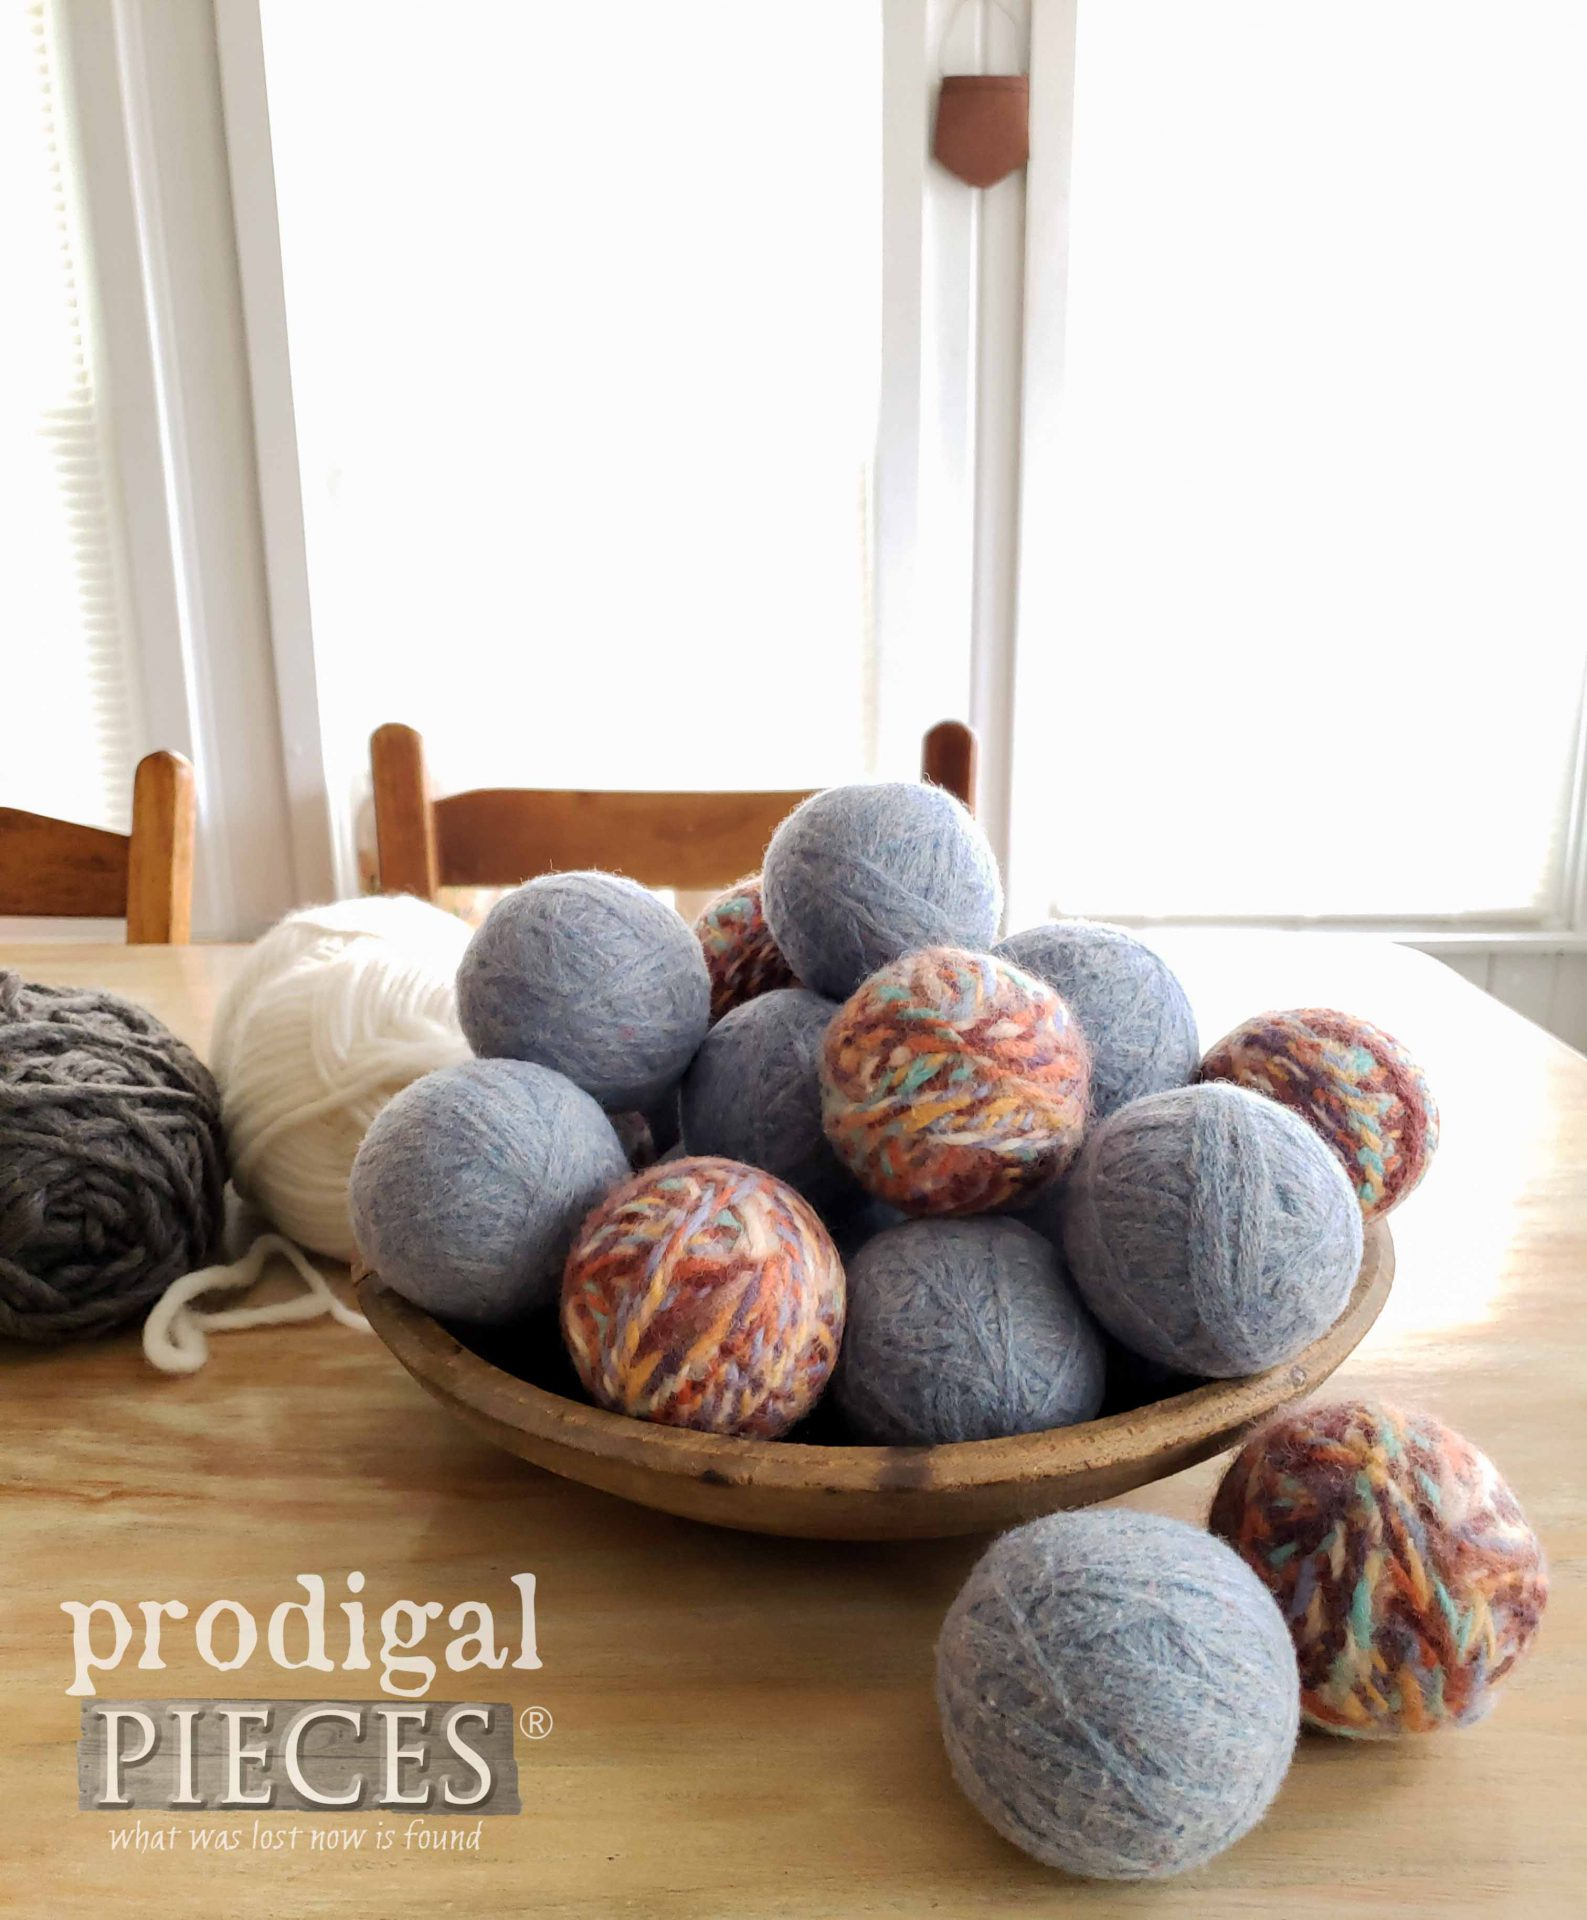 Felted Wool Dryer Balls by Larissa of Prodigal Pieces | prodigalpieces.com #prodigalpieces #diy #farmhouse #crafts #home